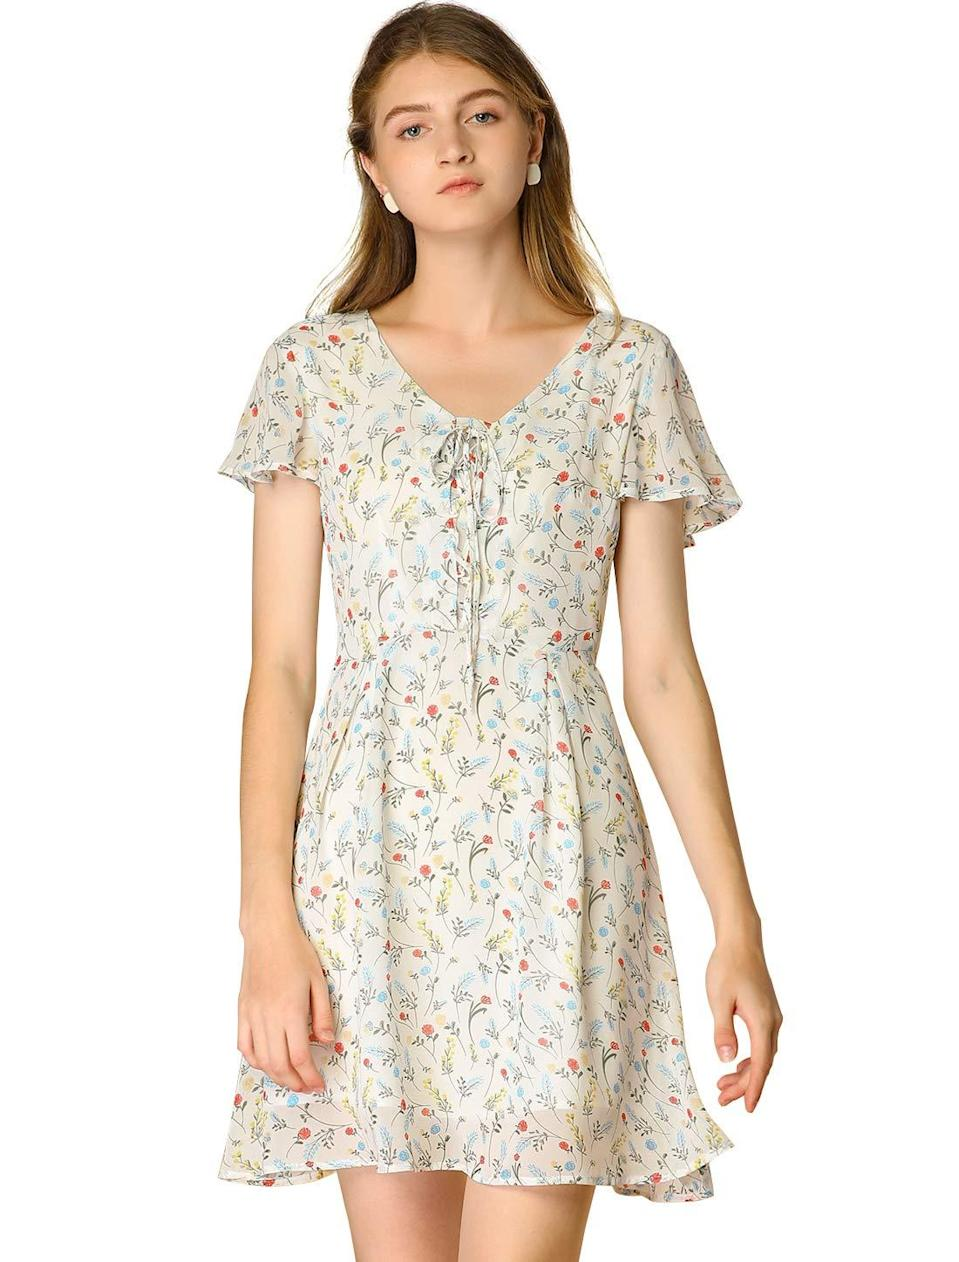 """<br><br><strong>allegra k</strong> Floral Flouncing Sleeve Dress, $, available at <a href=""""https://amzn.to/3o7V39c"""" rel=""""nofollow noopener"""" target=""""_blank"""" data-ylk=""""slk:Amazon"""" class=""""link rapid-noclick-resp"""">Amazon</a>"""